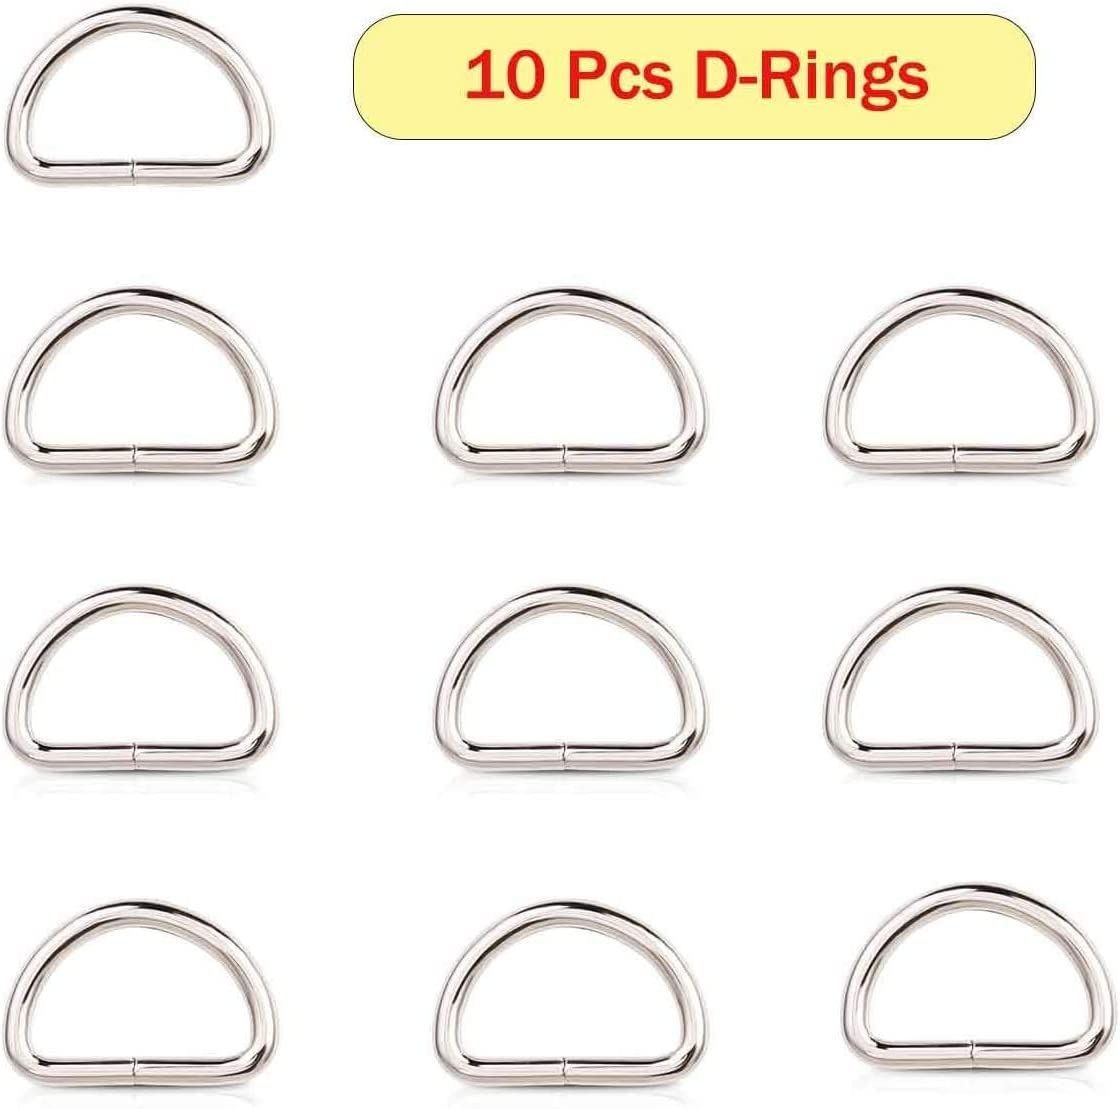 Swivel Lobster Clasps Clips Lanyard Snap Hook and Slide Buckles and Metal D Ring Semi-Circular D Ring for Handbag Bags Cat Dog Collar Buckles Ring Hand DIY Accessories Dog Leash Hardware Craft